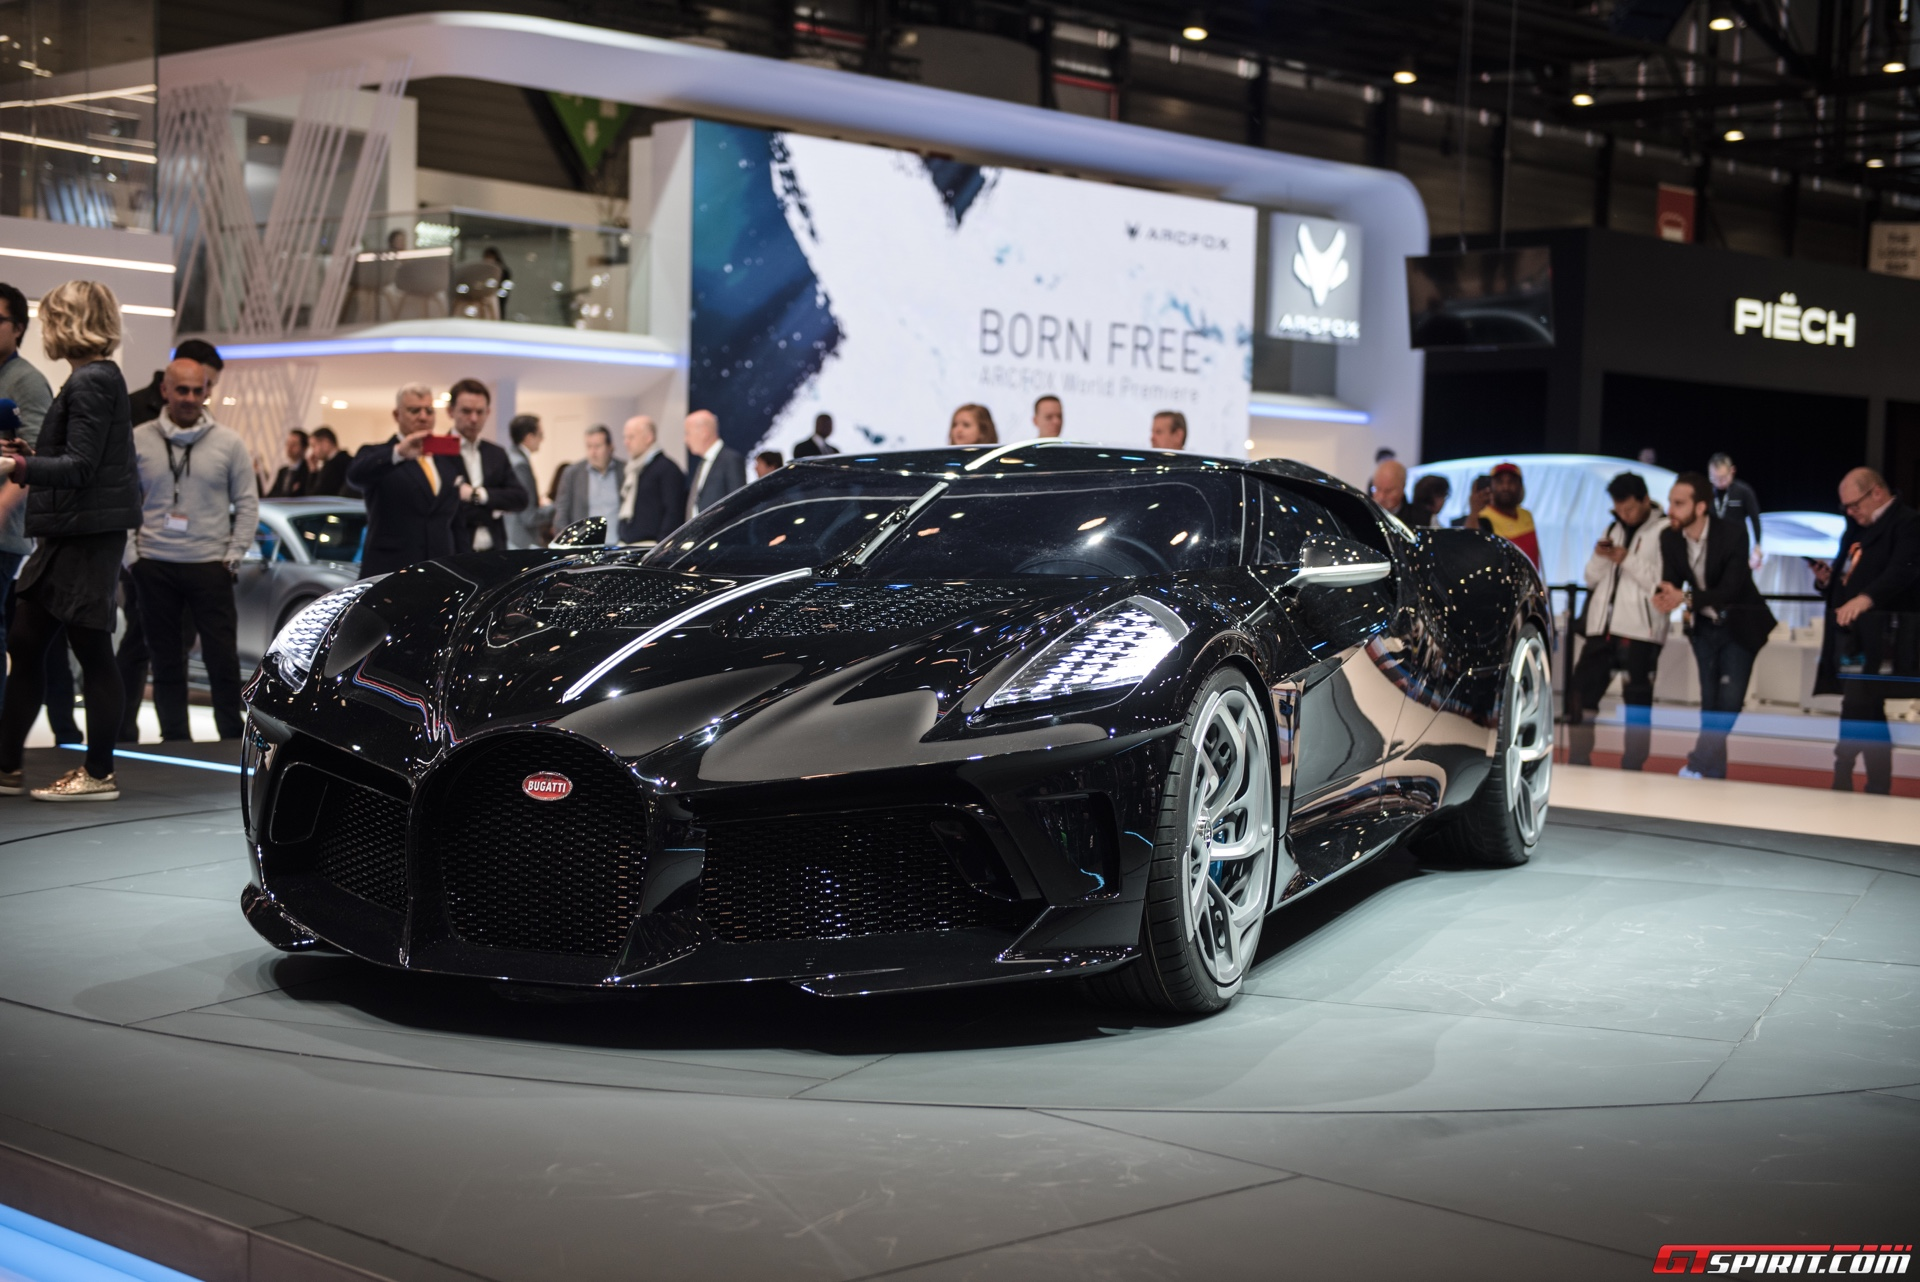 Bugattis La Voiture Noire is the worlds most expensive new auto